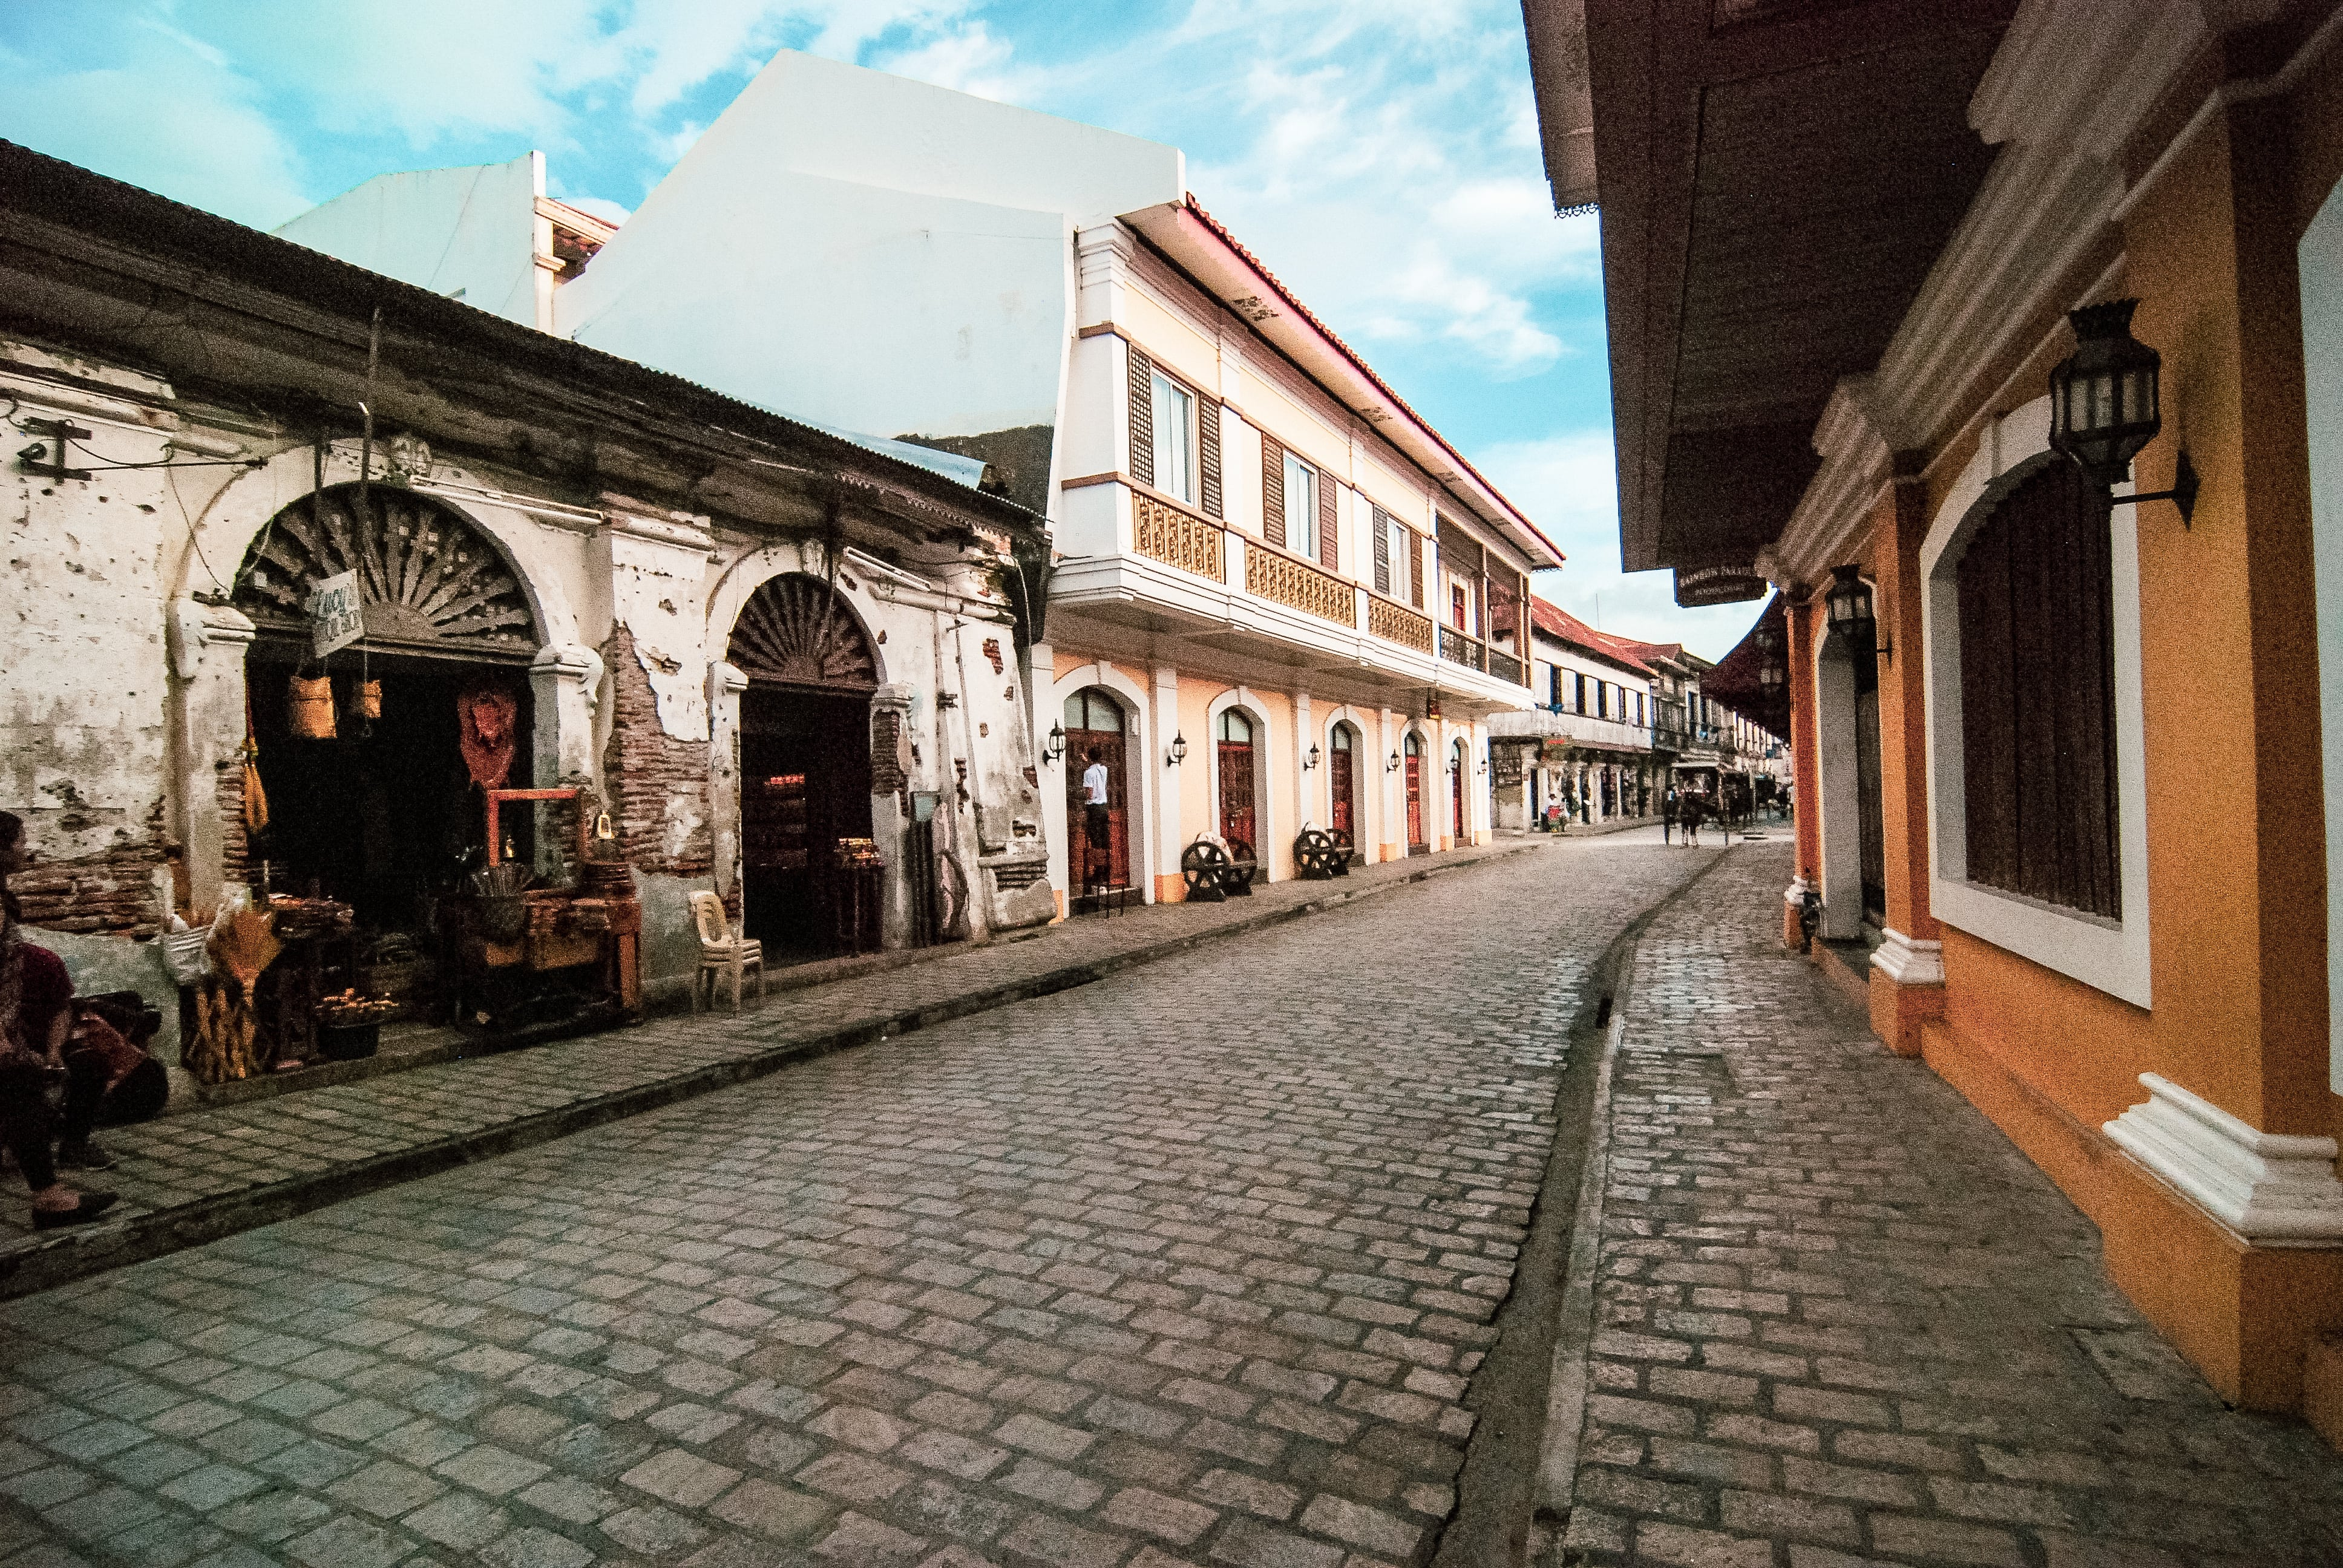 Spanish-style streets of Calle Crisologo which are popular among travellers